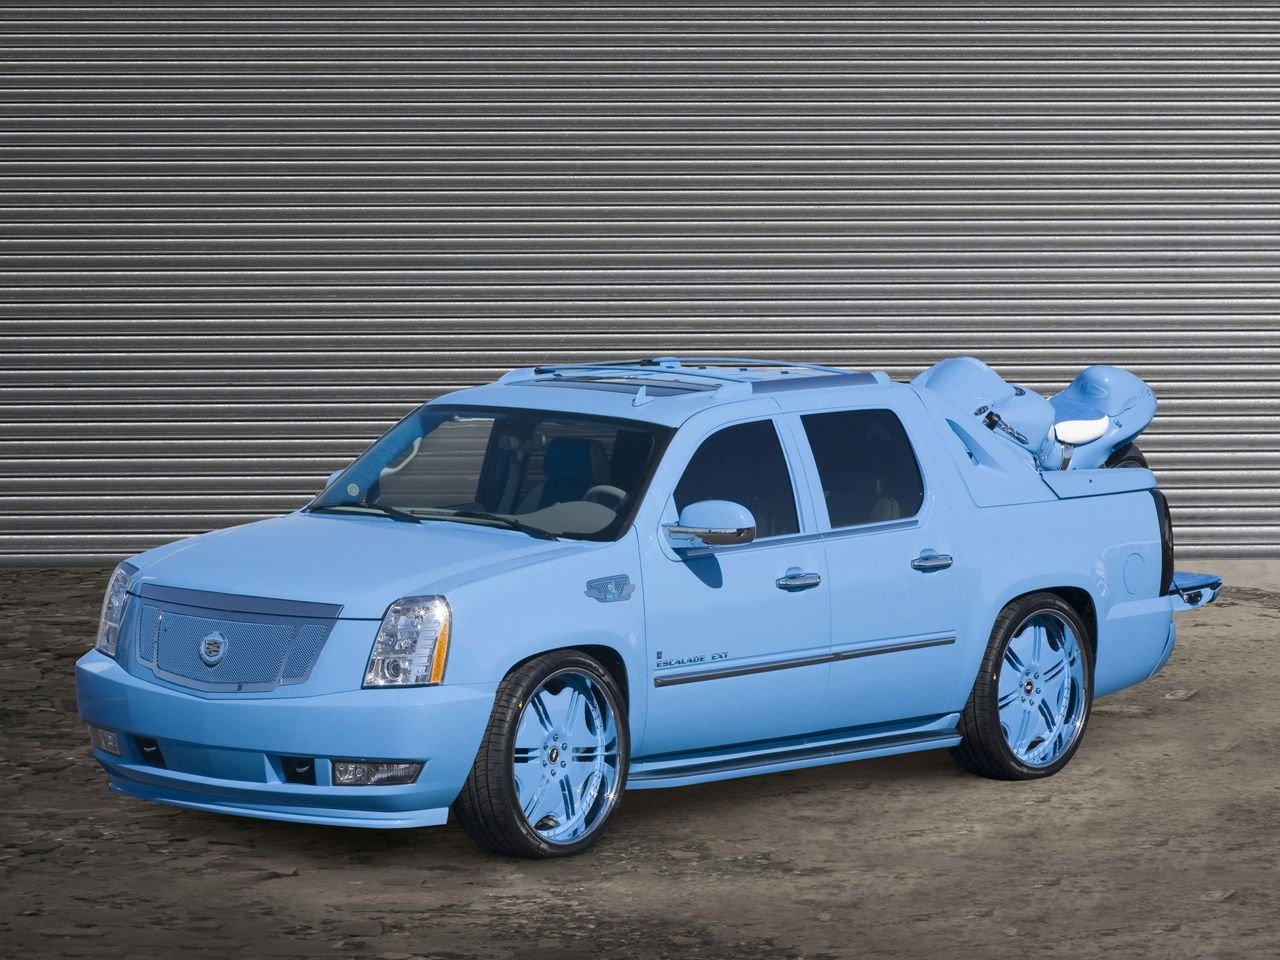 2006 cadillac escalade ext if this is real iwant it now